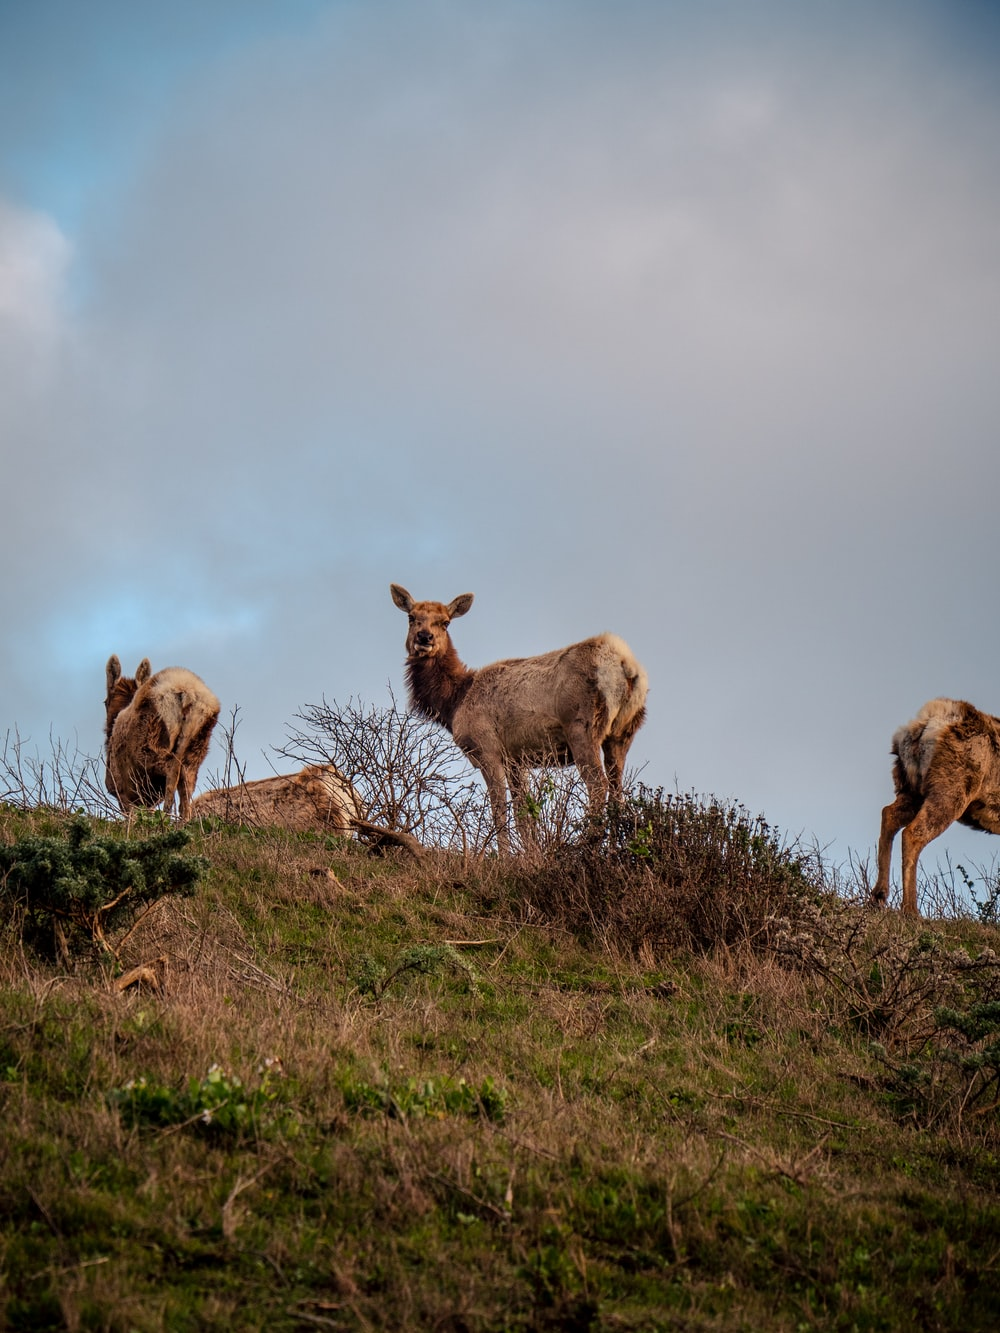 herd of goats on green grass field under white clouds and blue sky during daytime